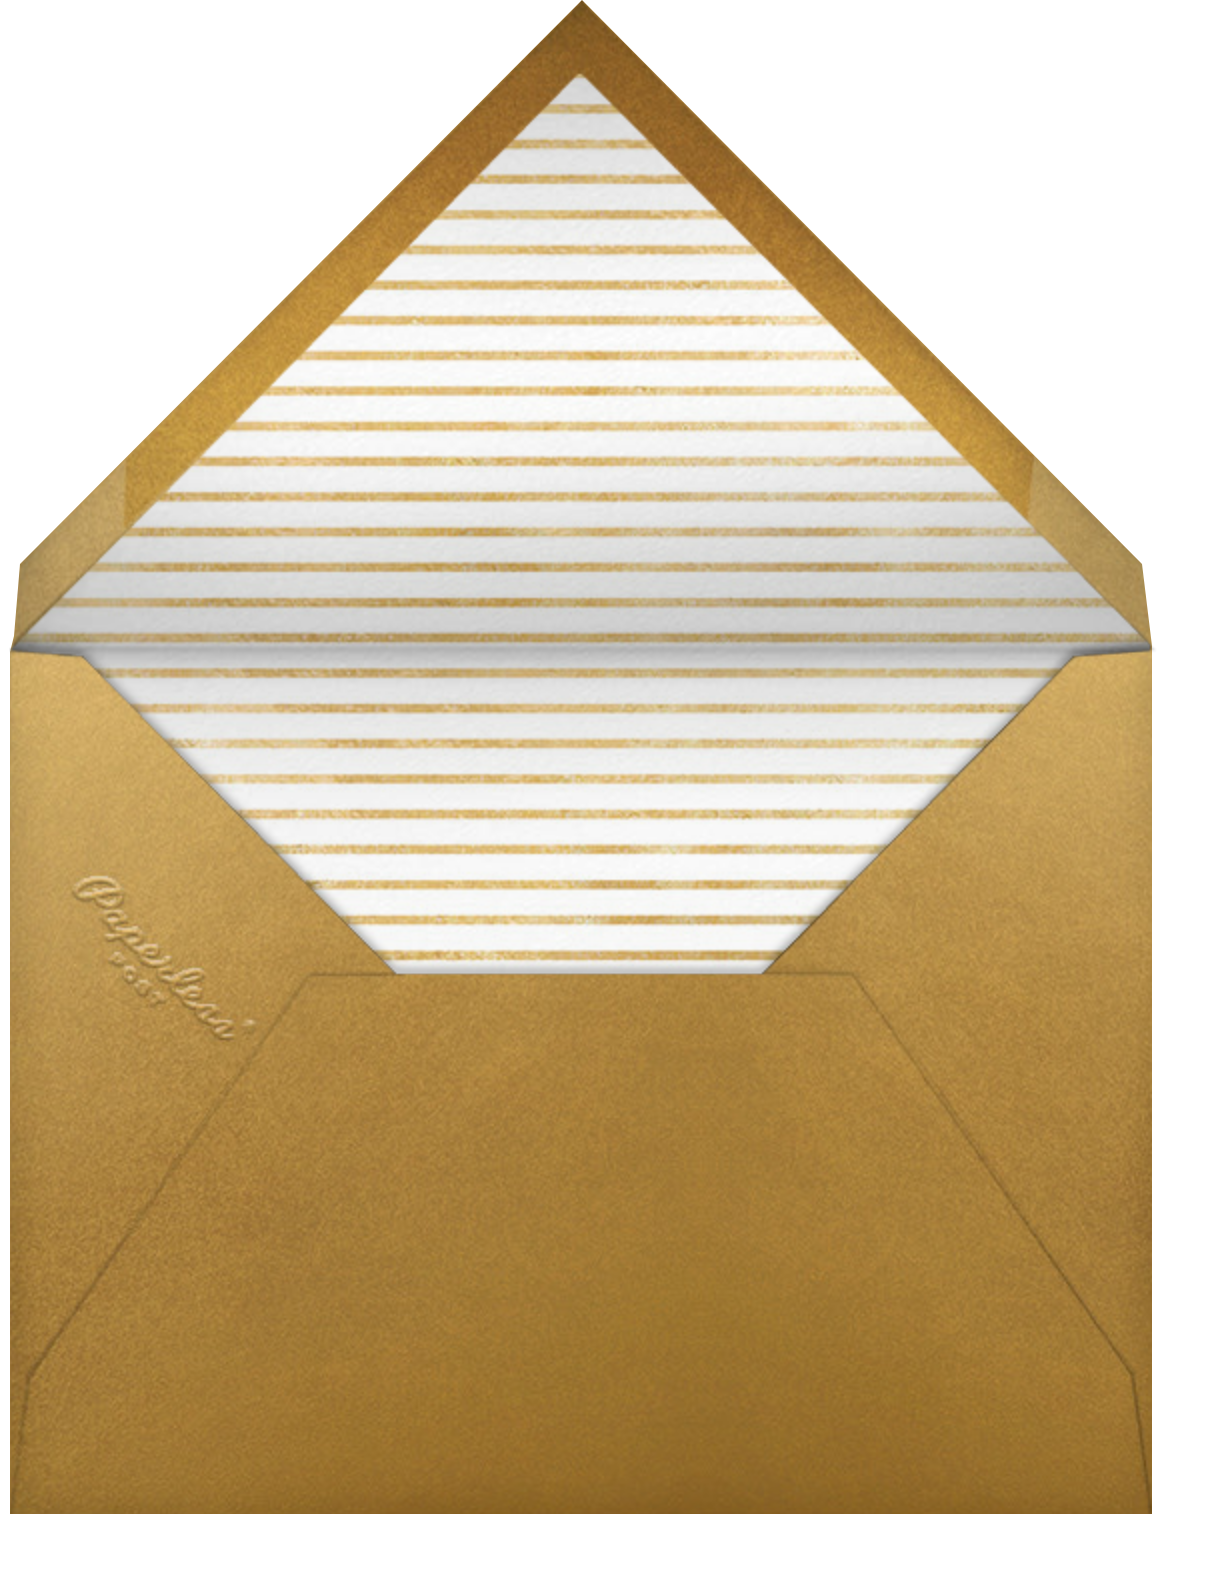 Snapshot Gold (Double Sided) - Horizontal - Paperless Post - Adult birthday - envelope back